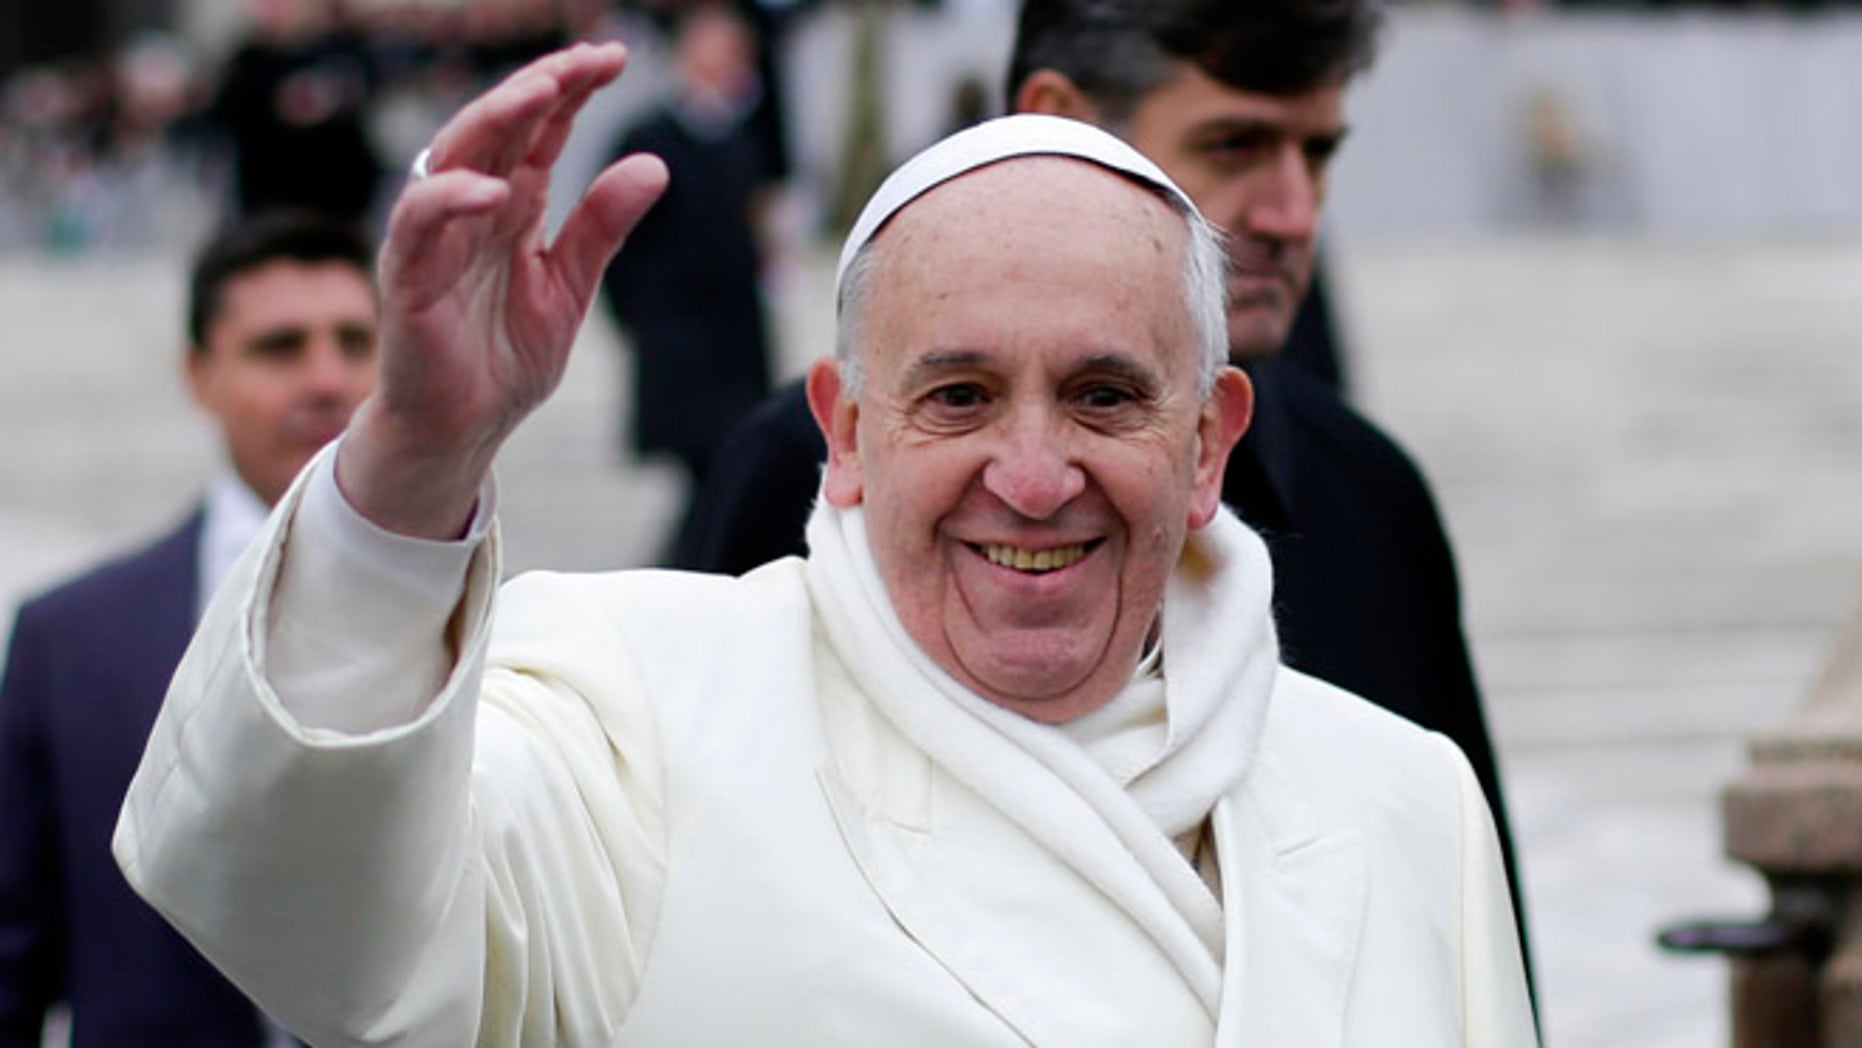 Nov. 27, 2013: Pope Francis waves as he conducts his weekly general audience at St. Peter's Square at the Vatican.